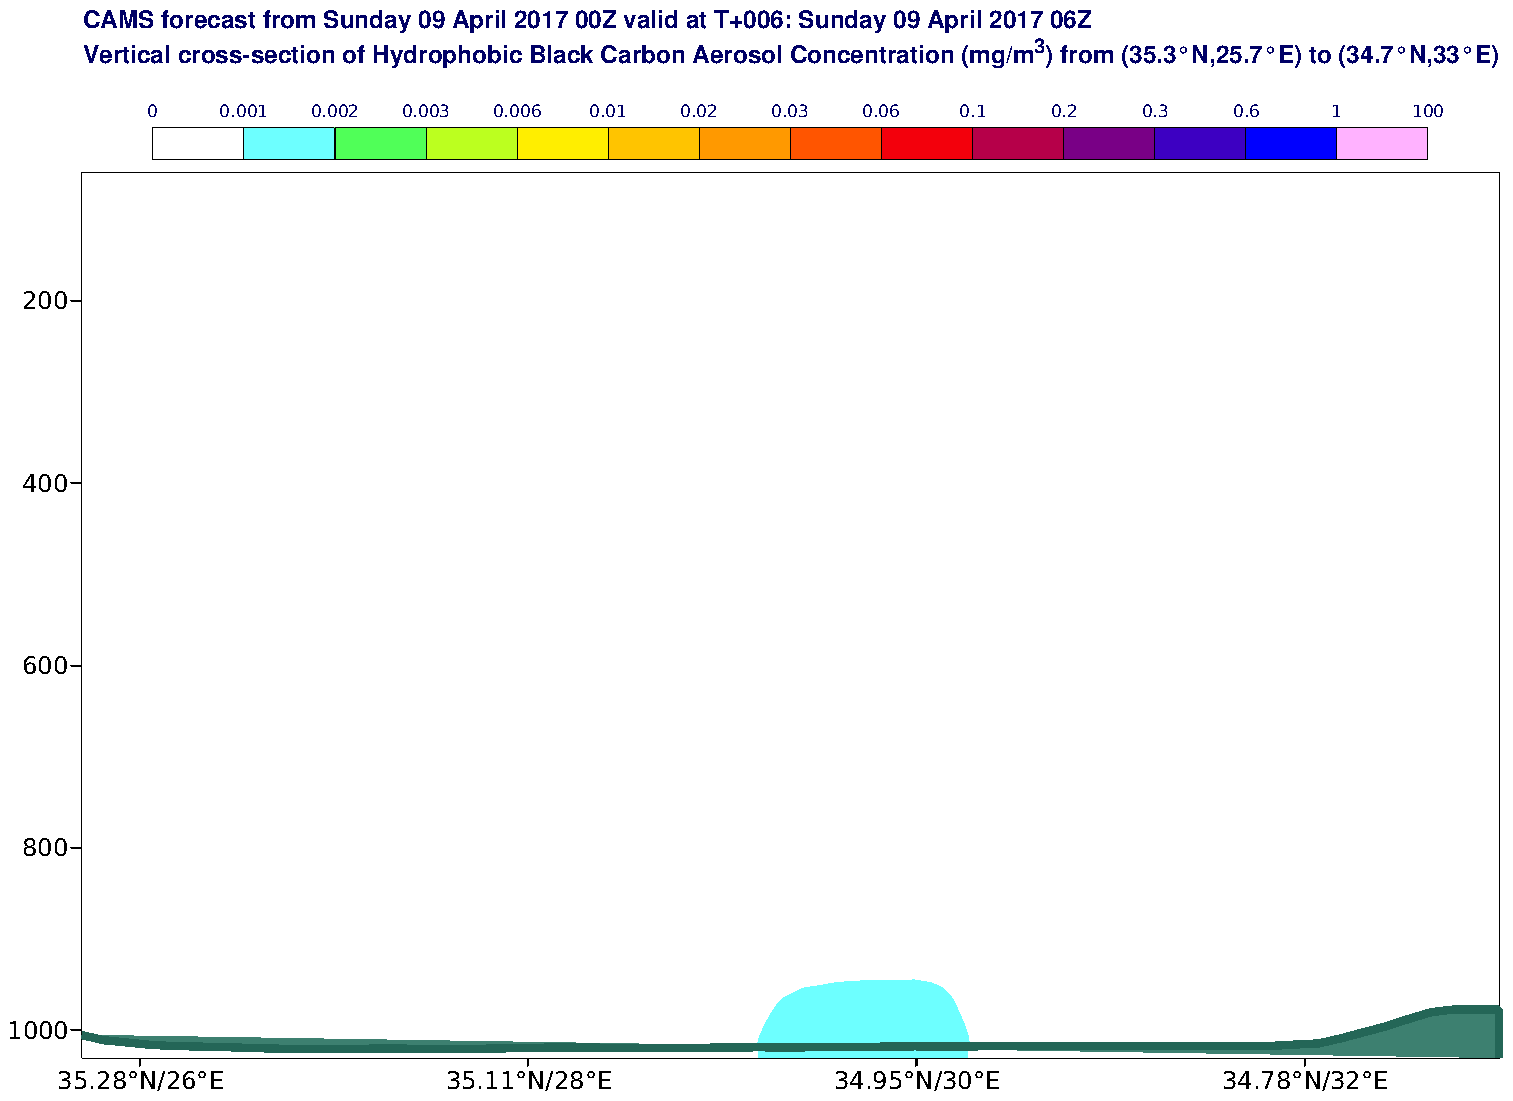 Vertical cross-section of Hydrophobic Black Carbon Aerosol Concentration (mg/m3) valid at T6 - 2017-04-09 06:00